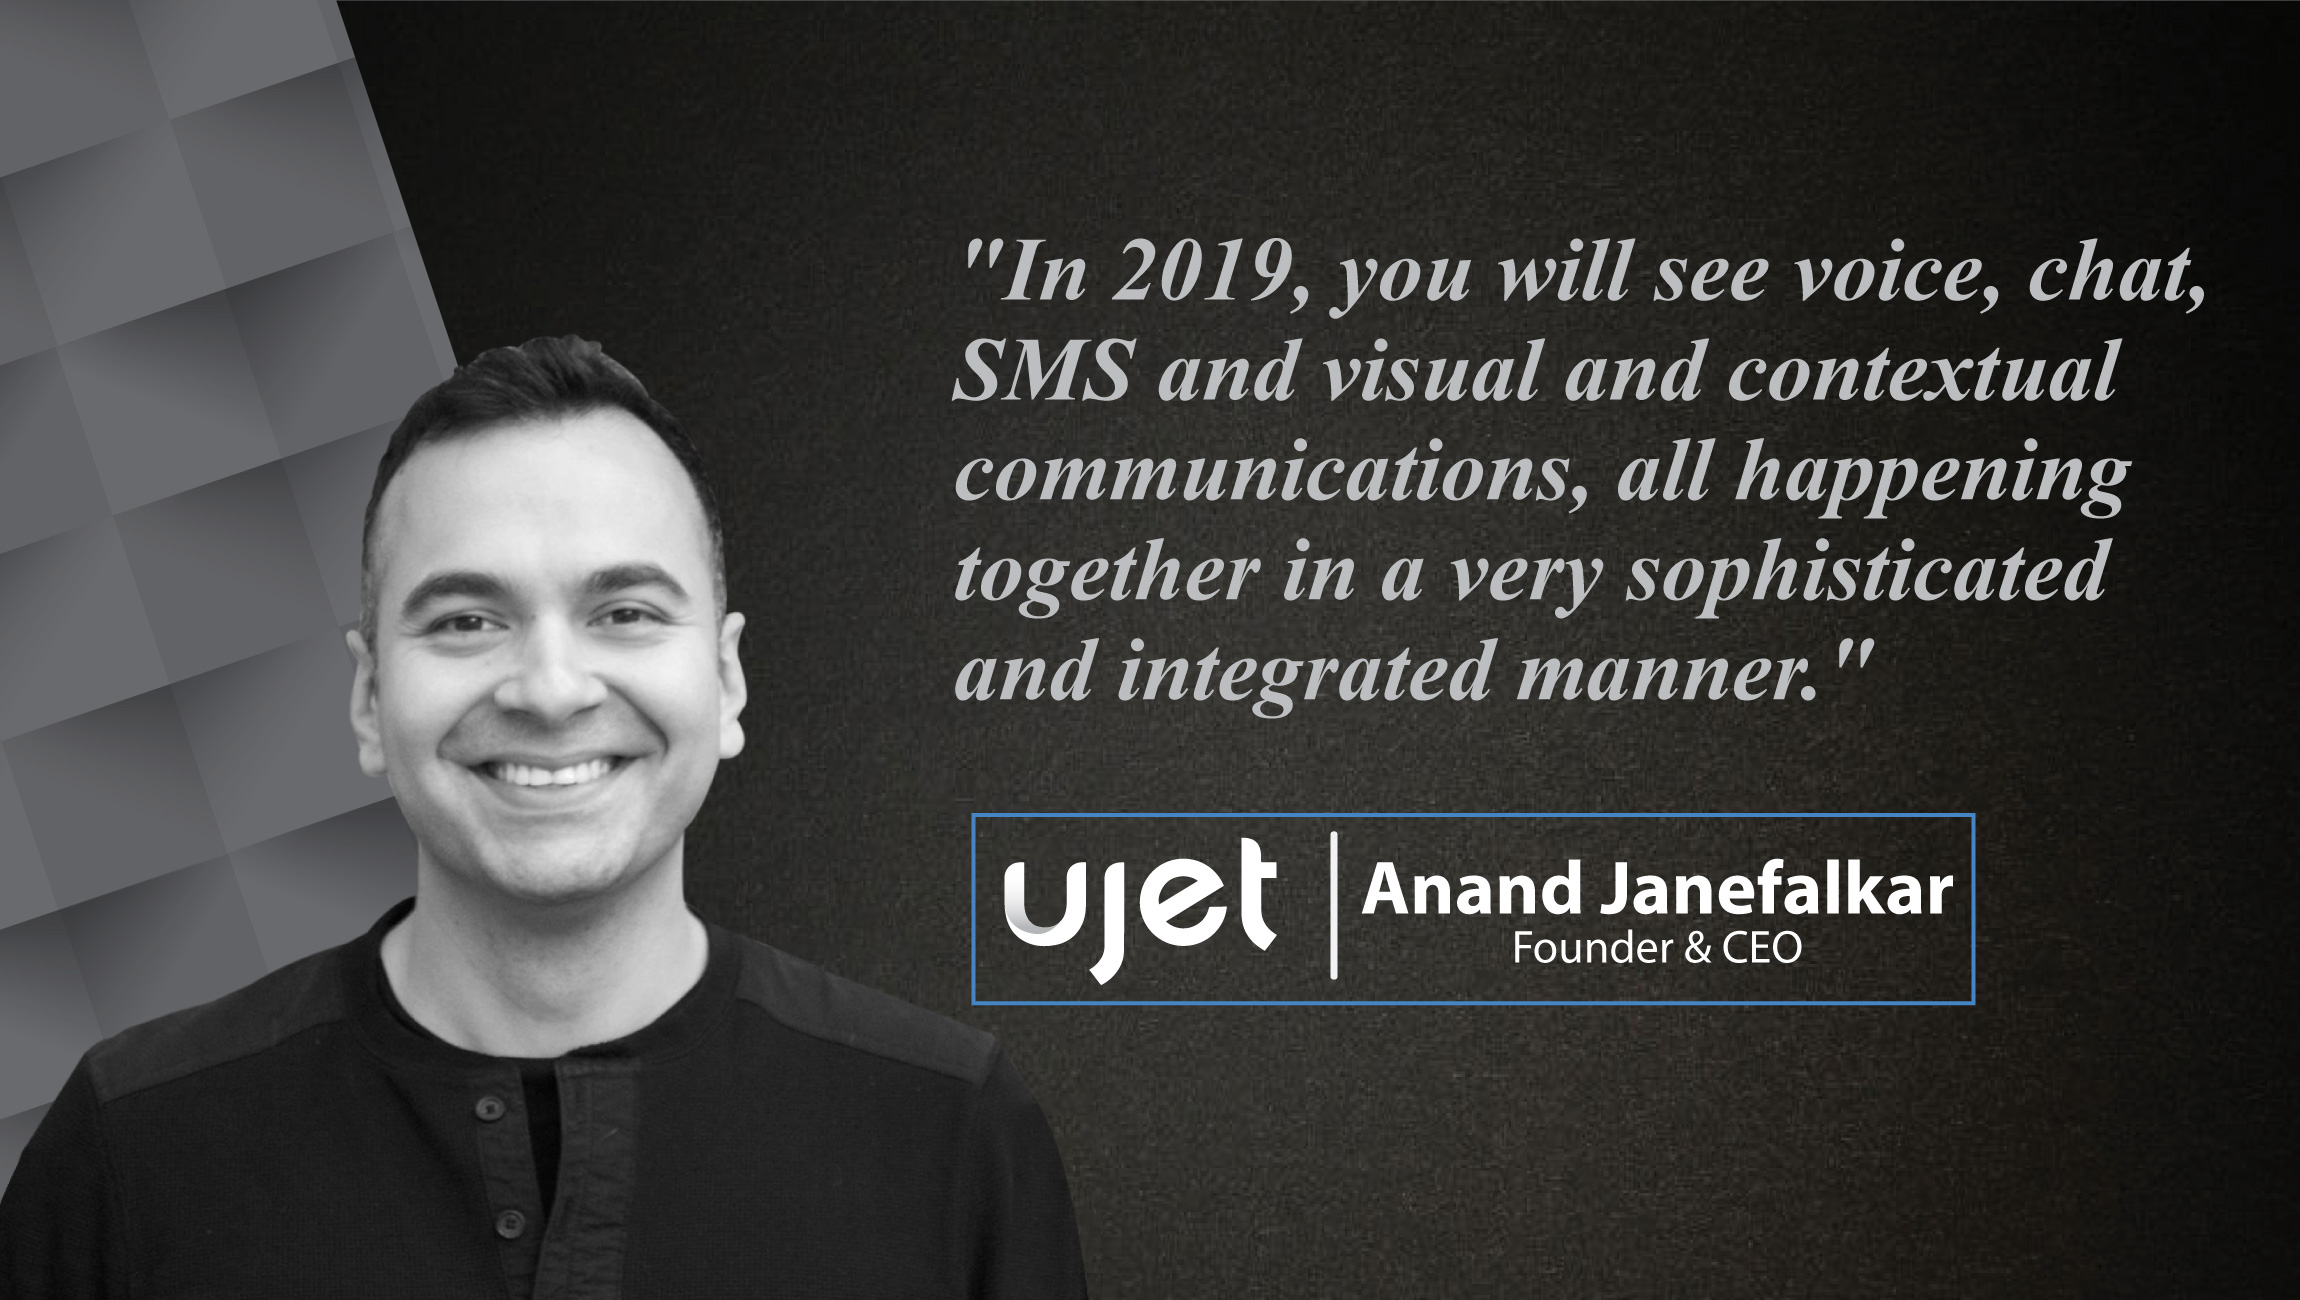 Interview with Anand Janefalkar, Founder & CEO, UJET - cue card